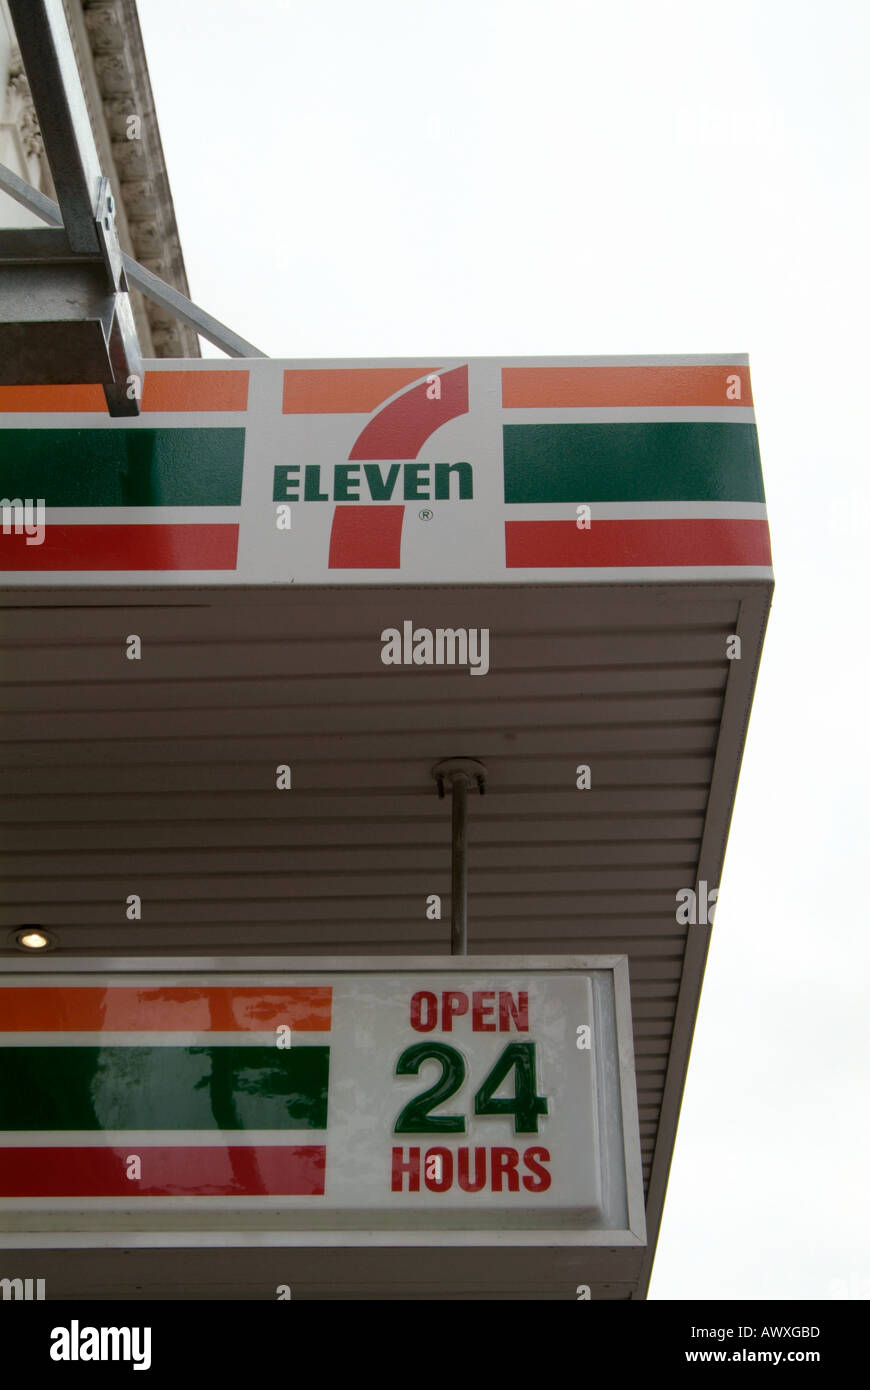 7 11 store seven eleven conveince store shop outlet long hours ...